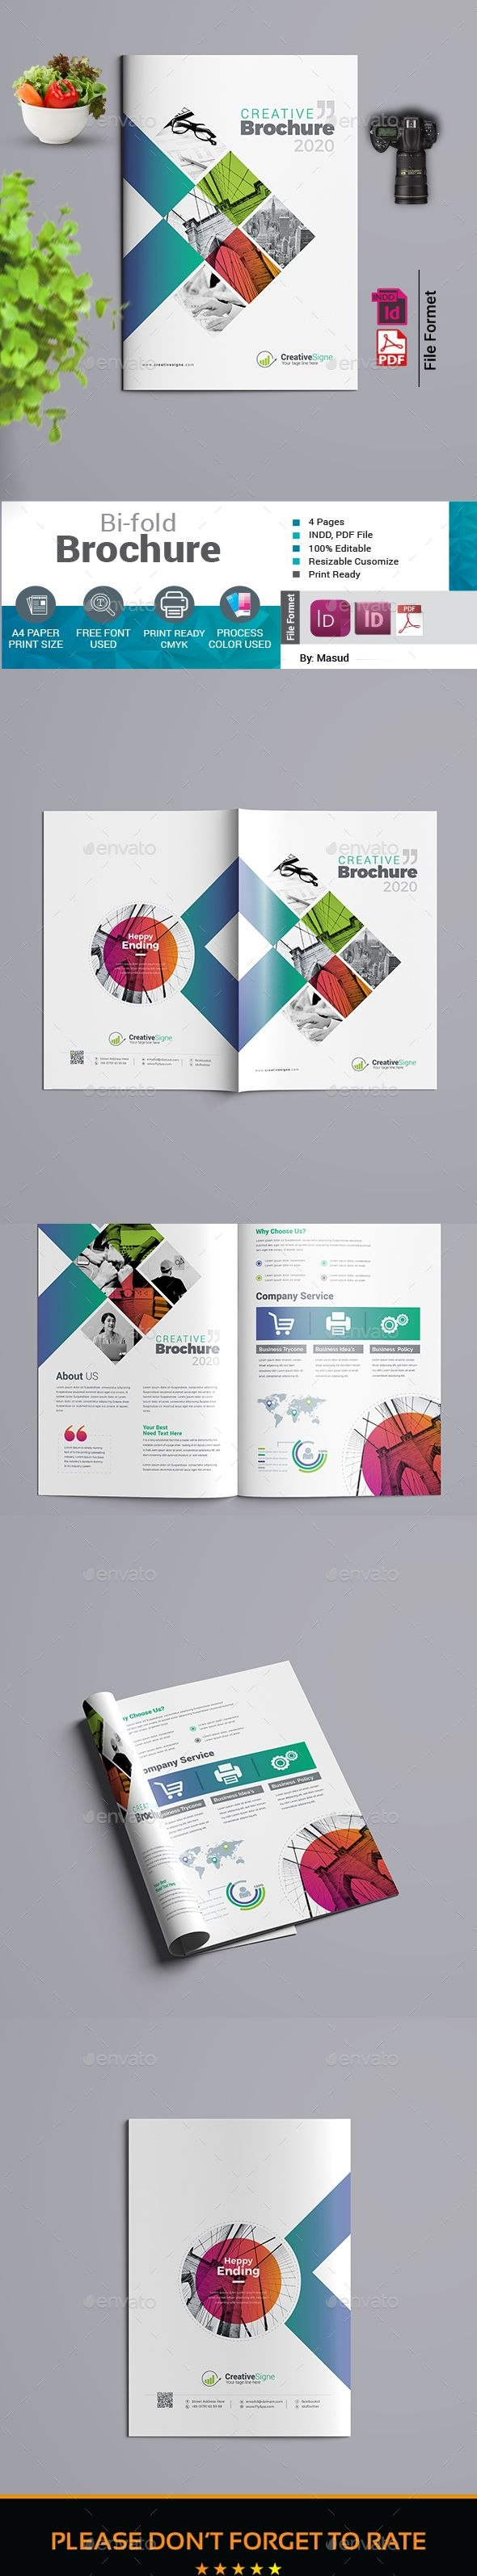 Bifold Brochure Template Indesign Indd  A And Us Letter Size Throughout Letter Size Brochure Template